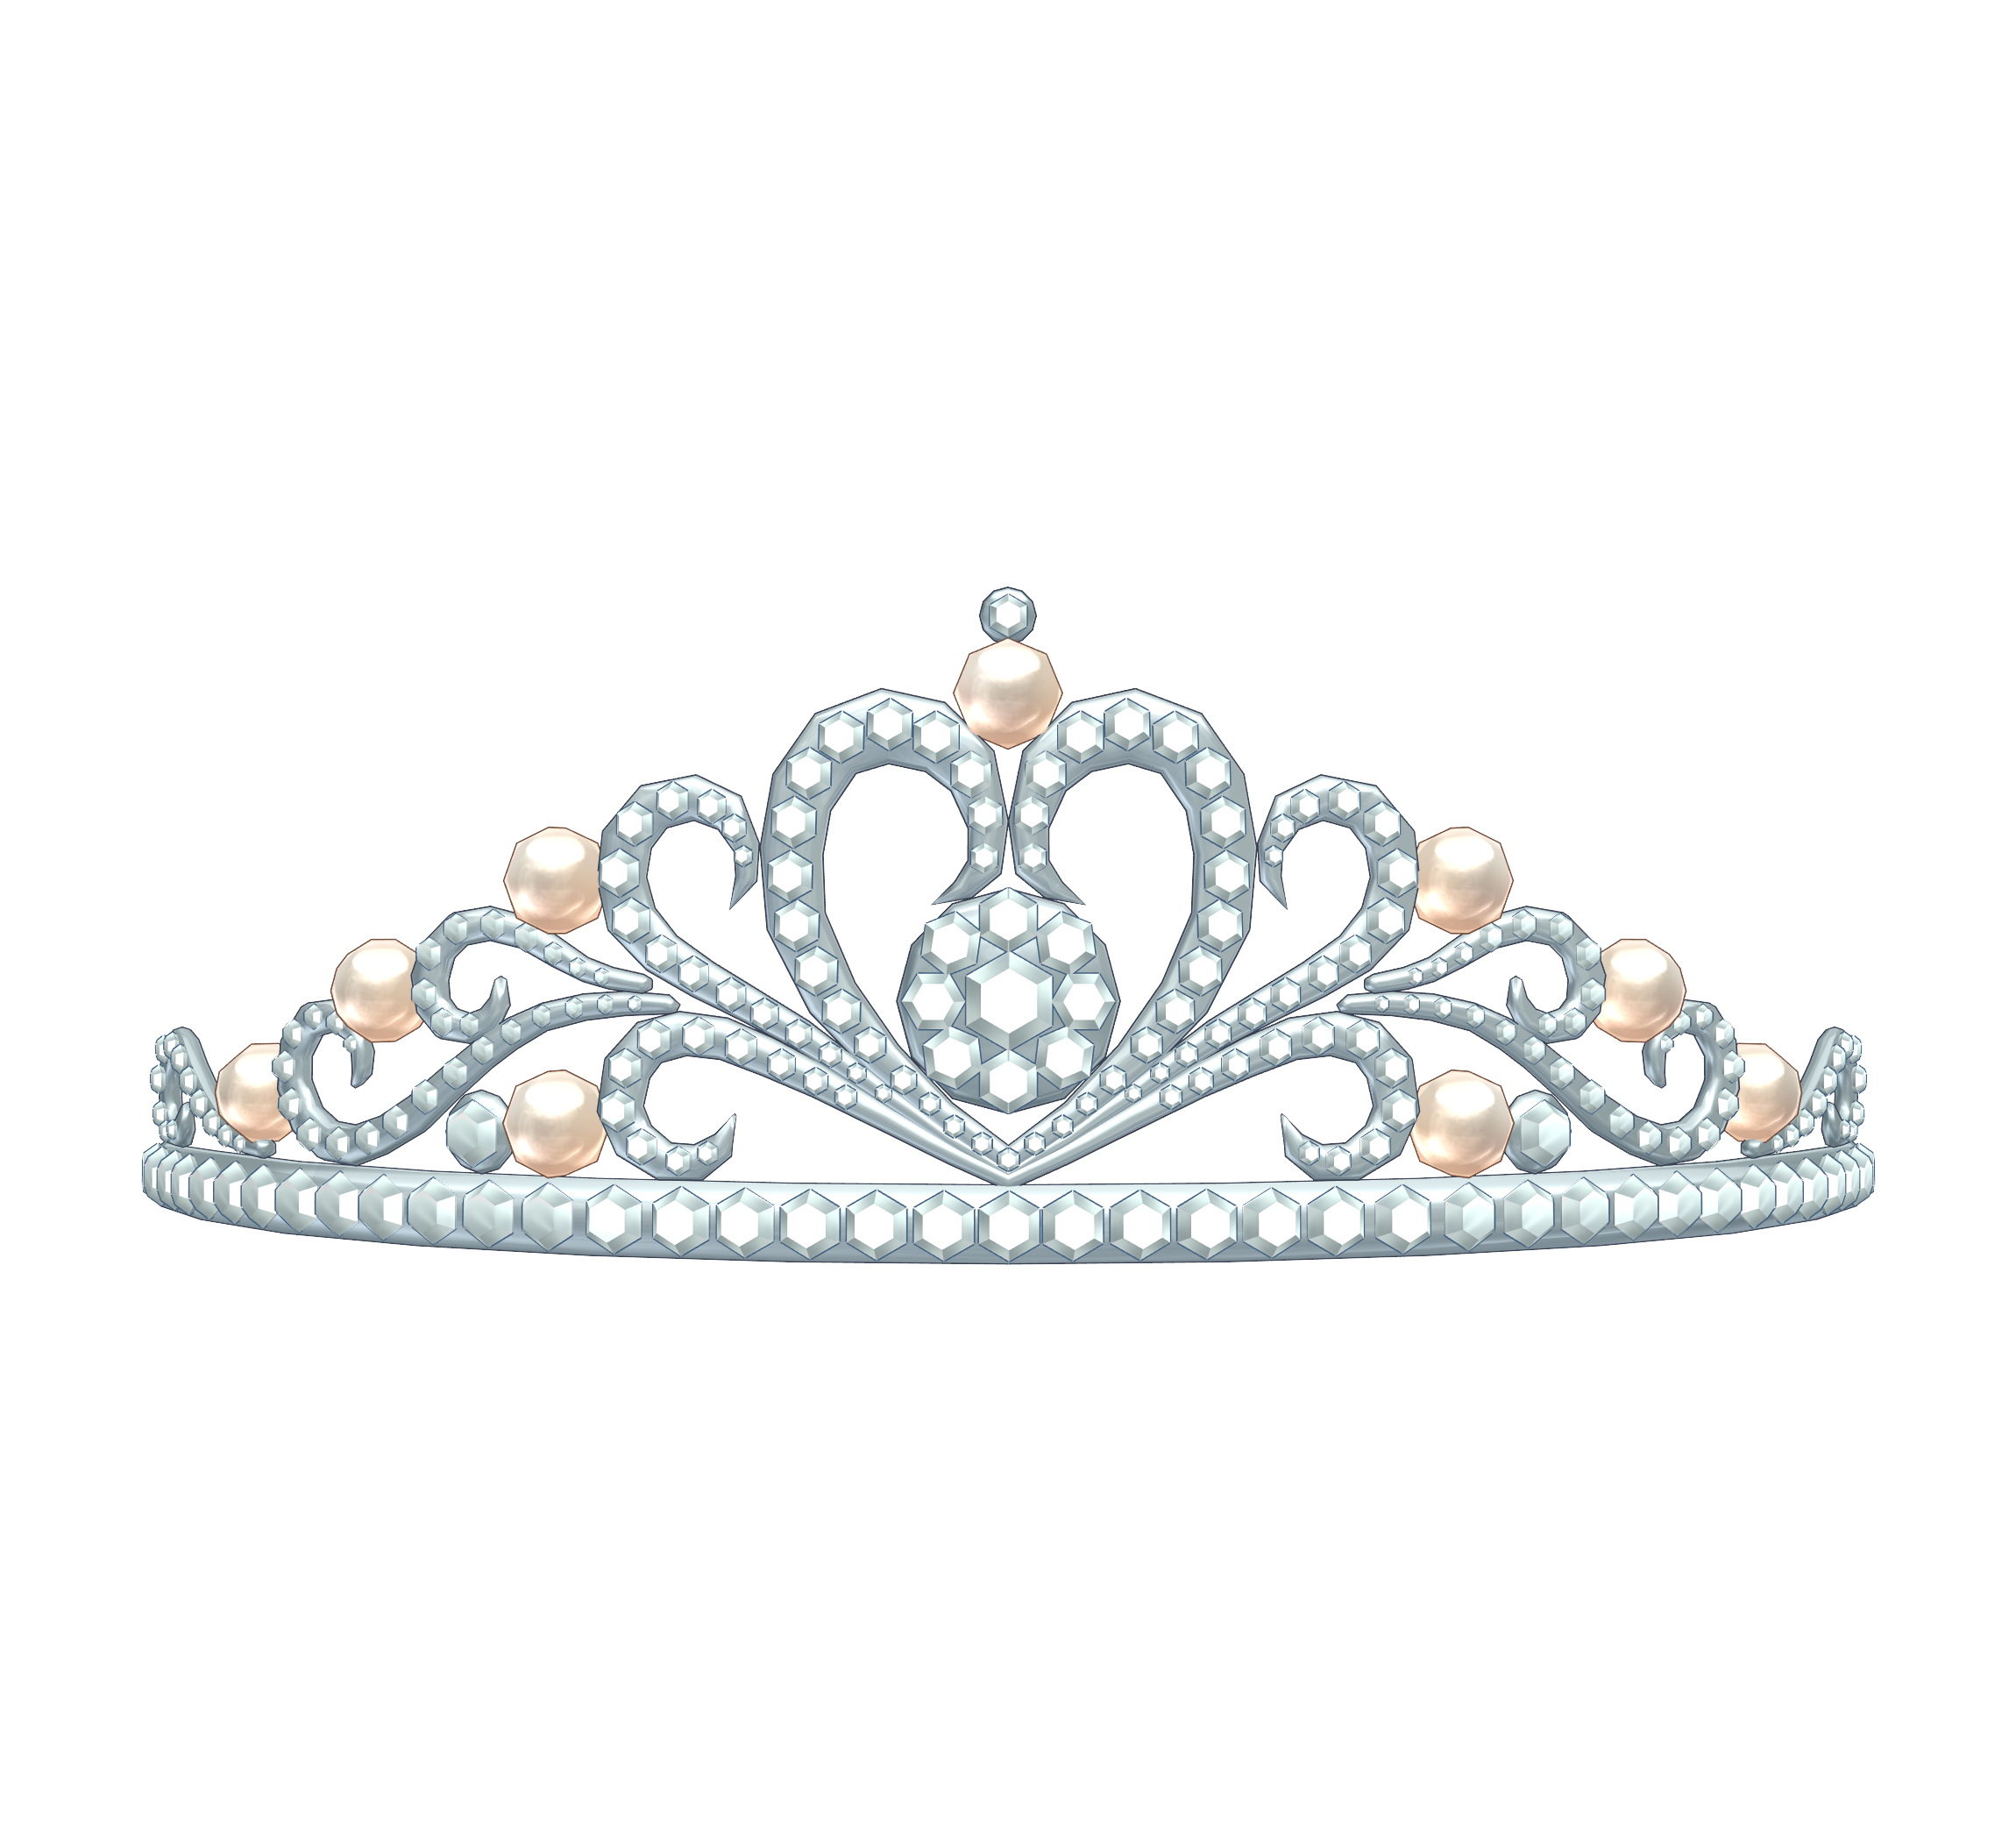 freeuse library Tiara clipart transparent background. Png hd images pluspng